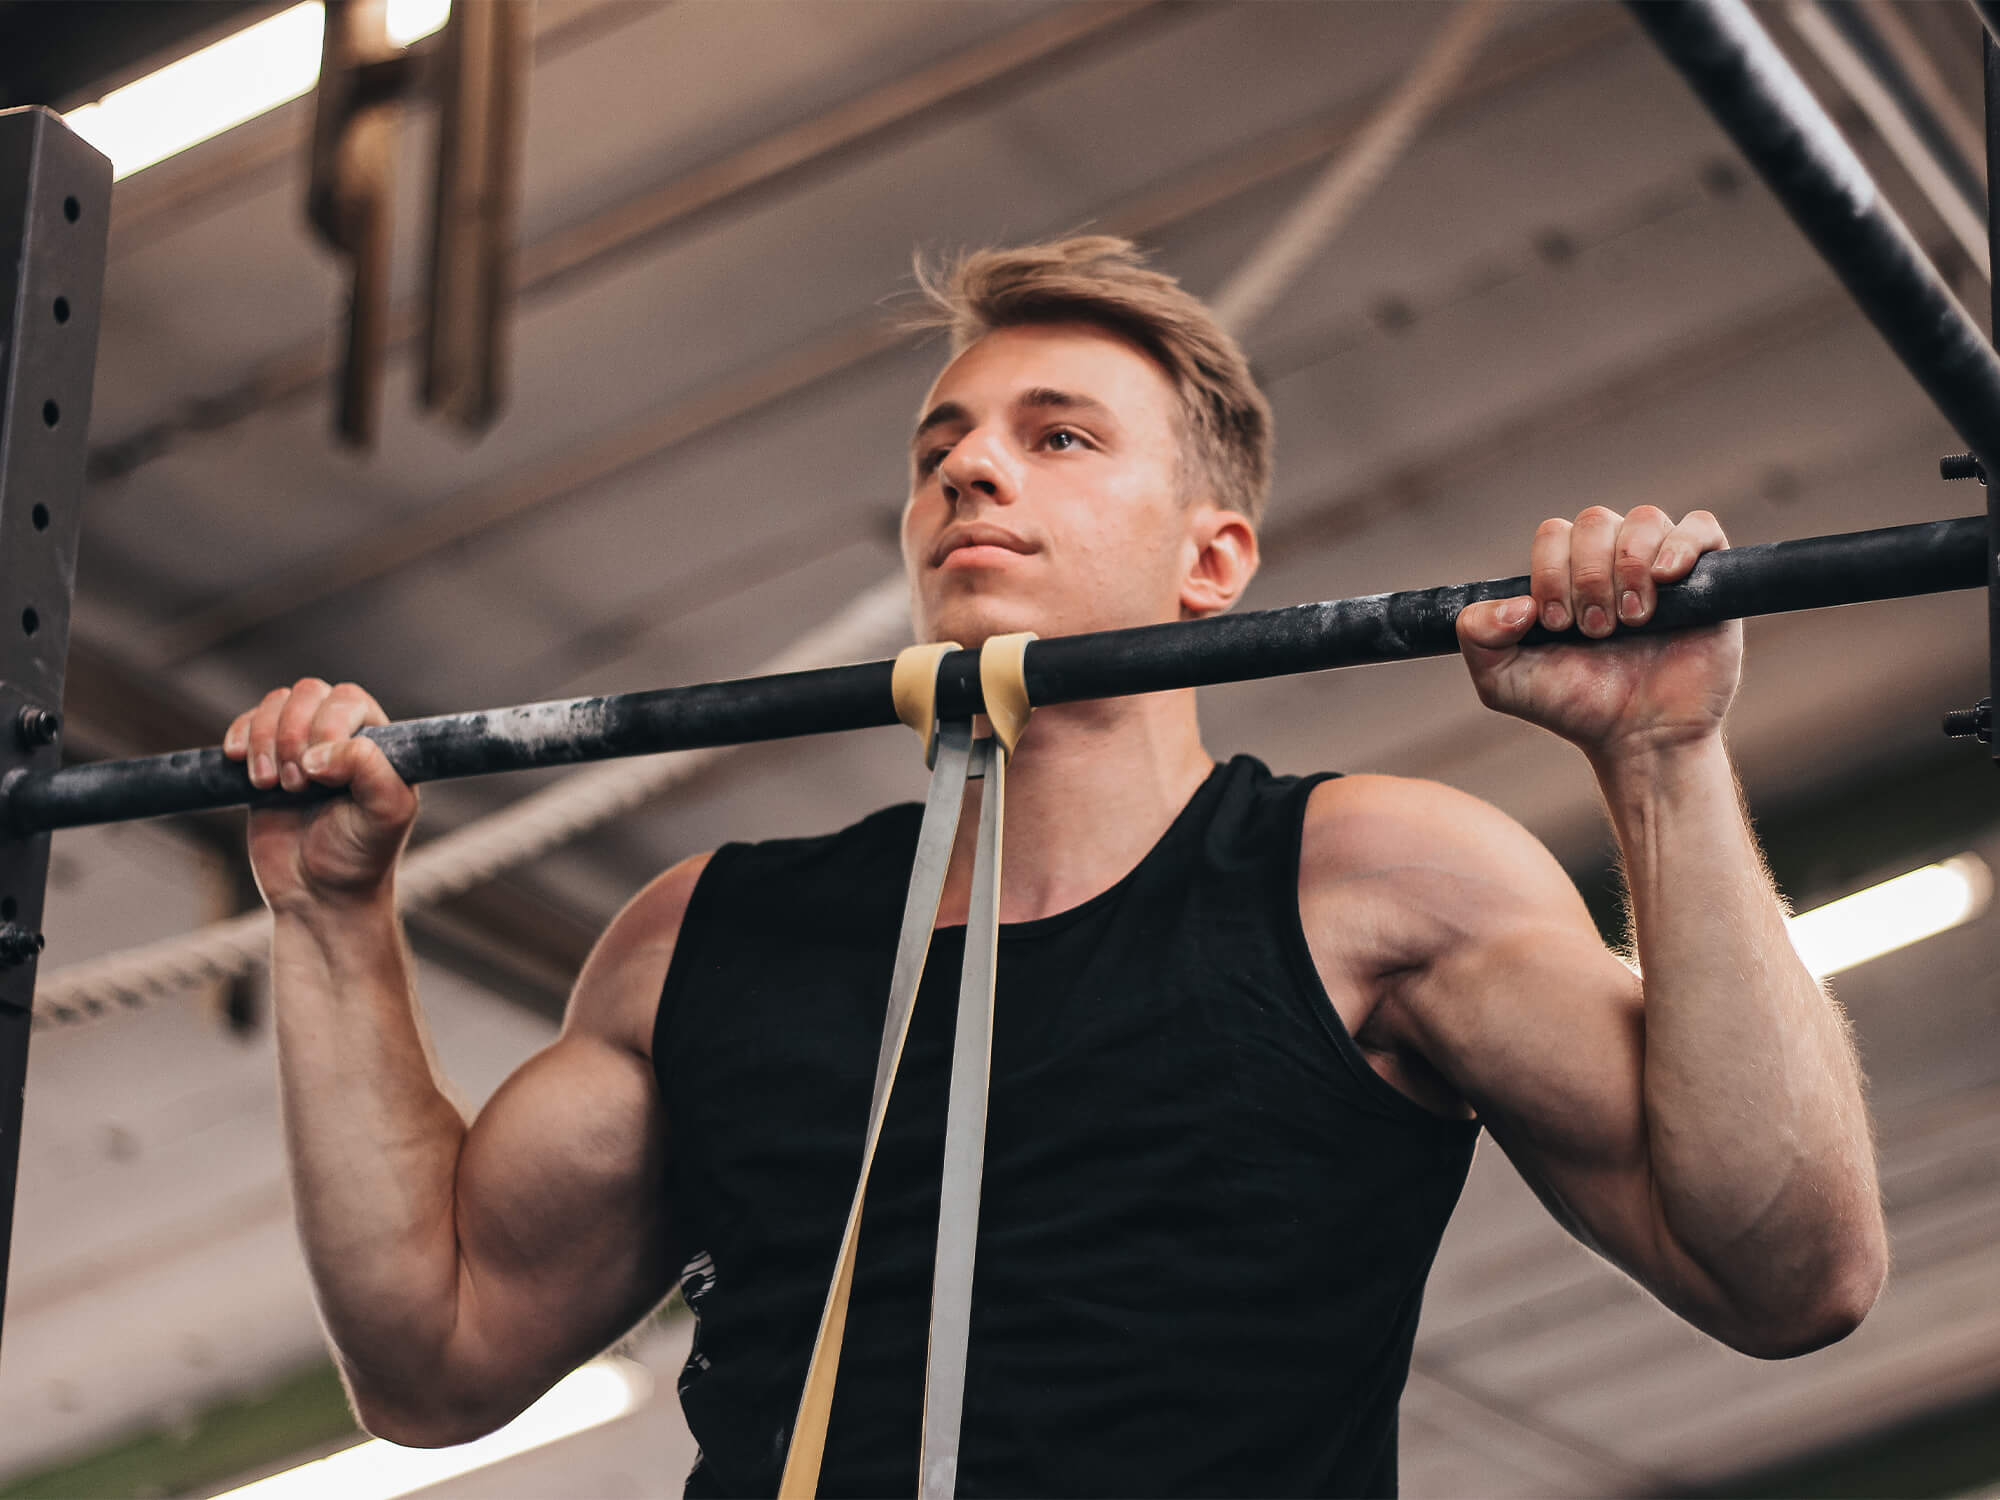 pull ups with resistance band